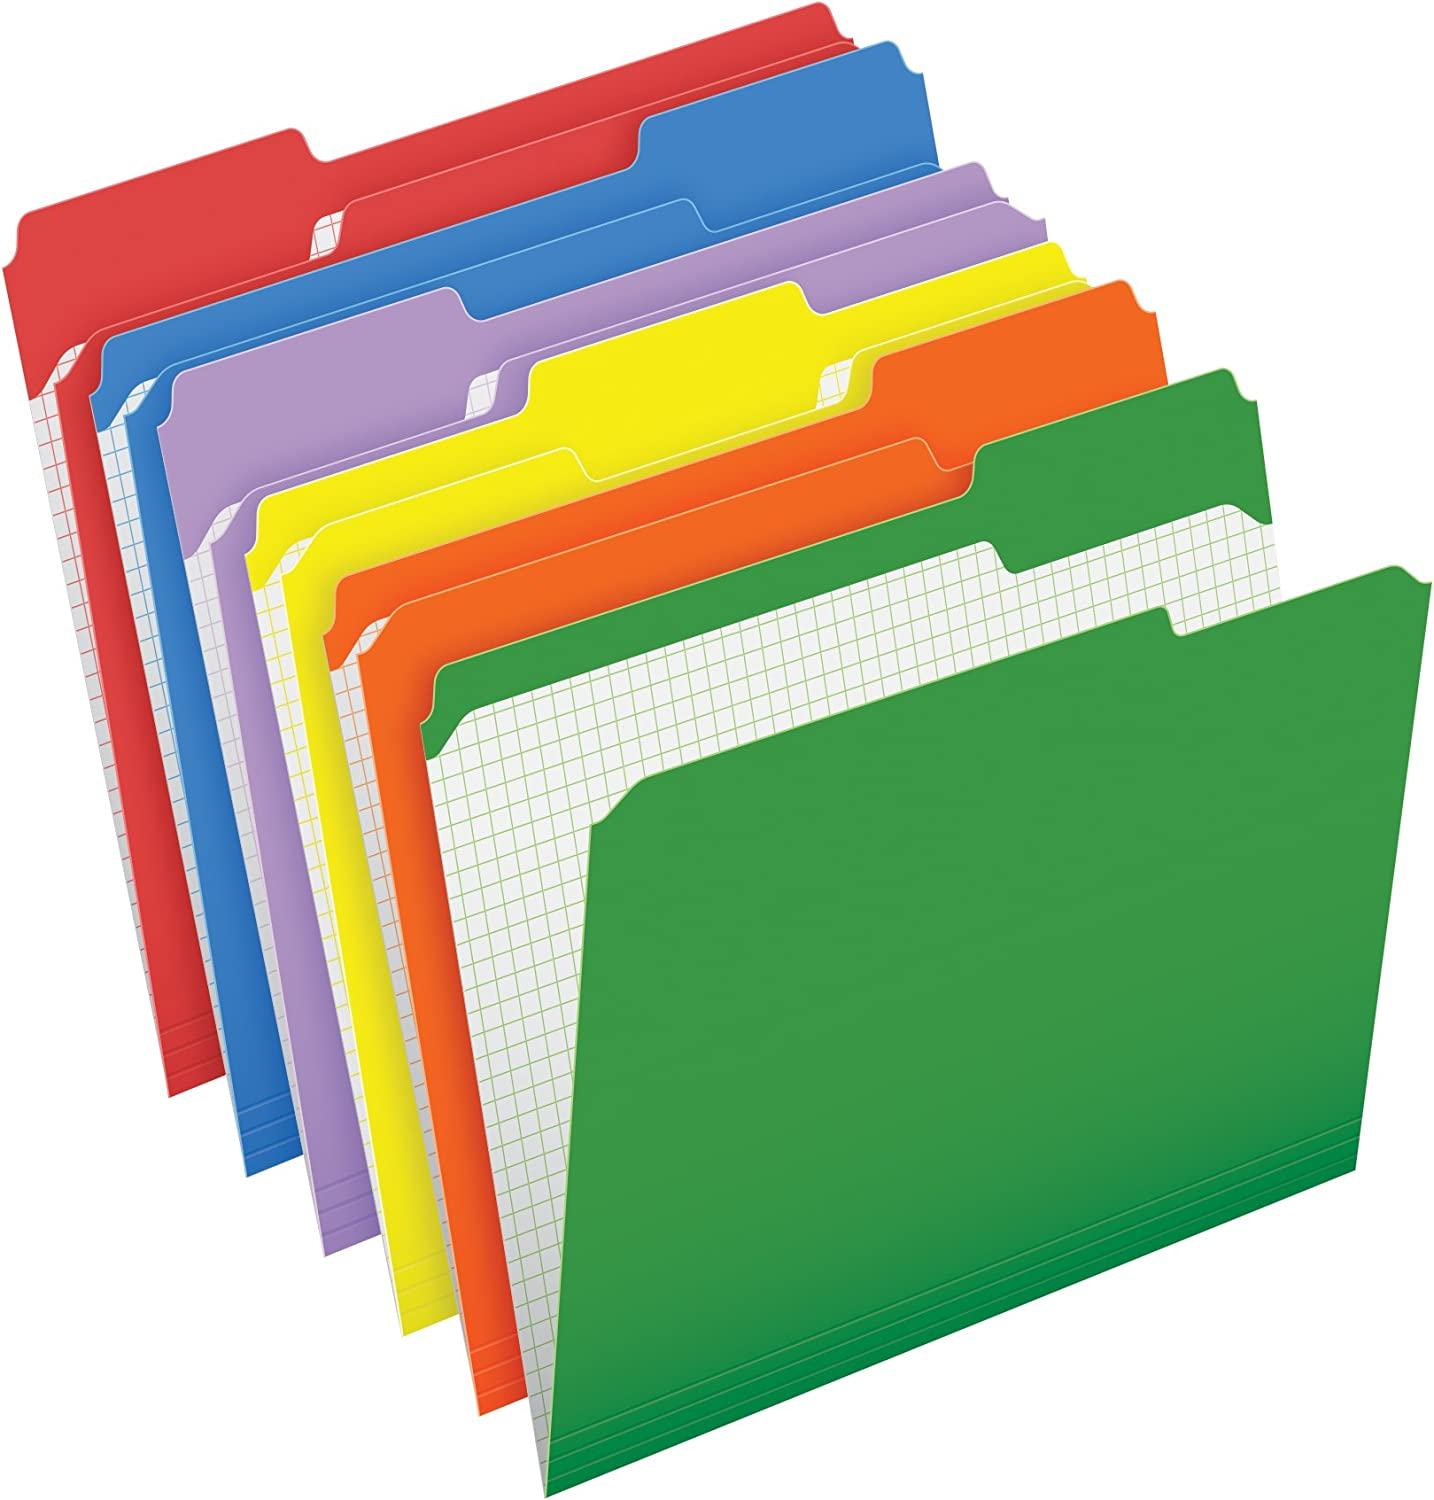 Pendaflex Color File Folders with Interior Grid, Letter Size, Assorted Colors, 1/3 Cut, 100/BX (R152 1/3 ASST) : Colored File Folders : Office Products